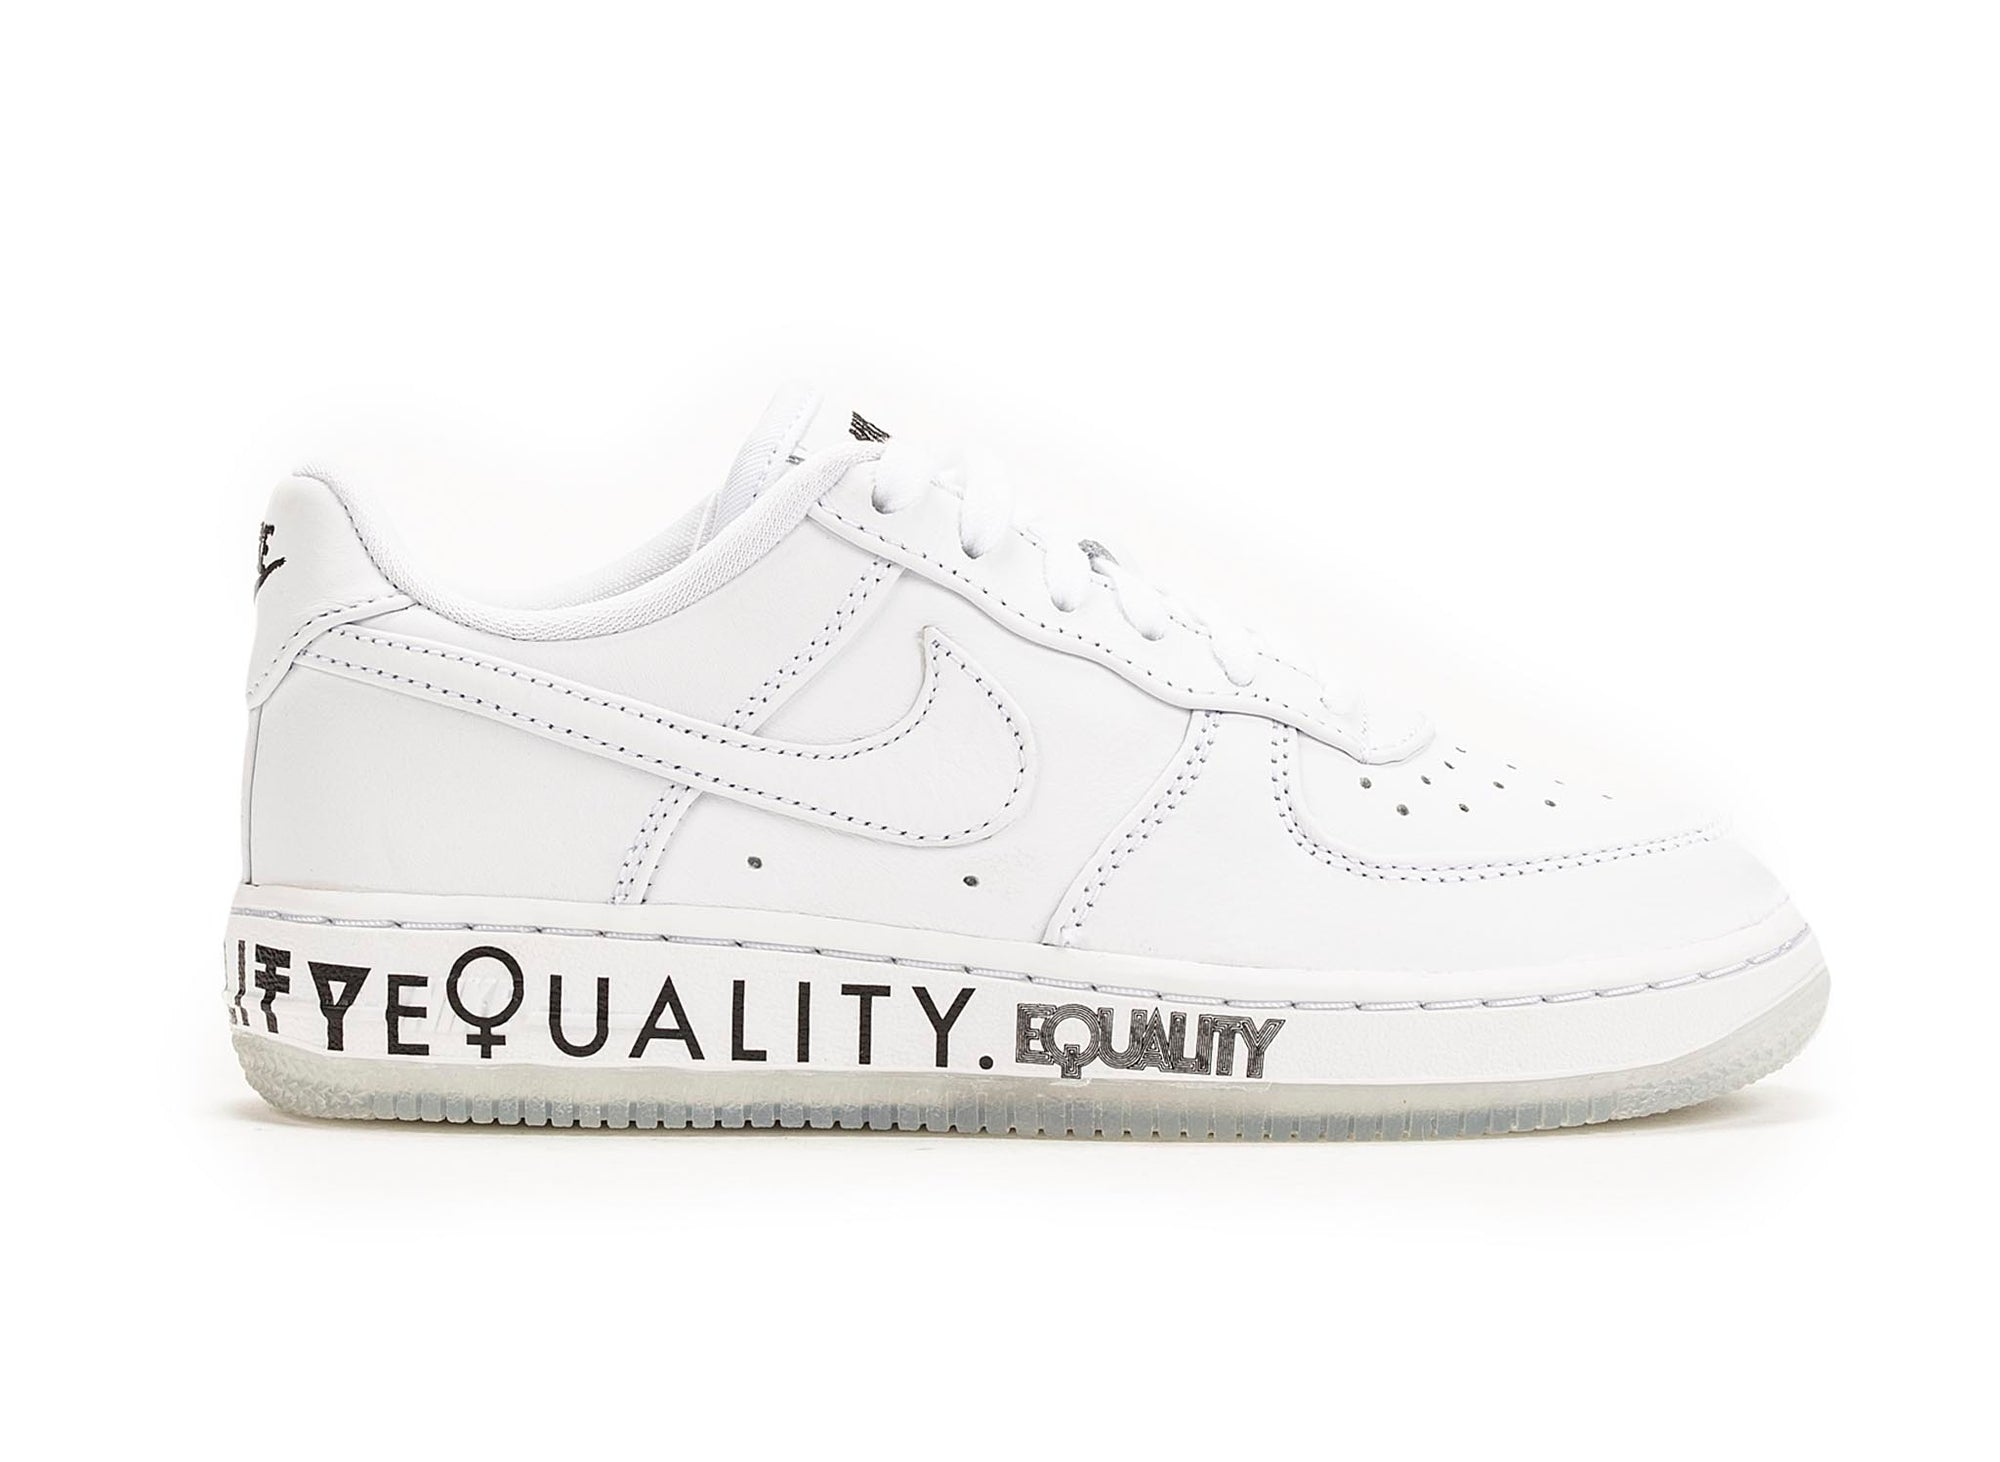 NIKE FORCE 1 EQUALITY KIDS